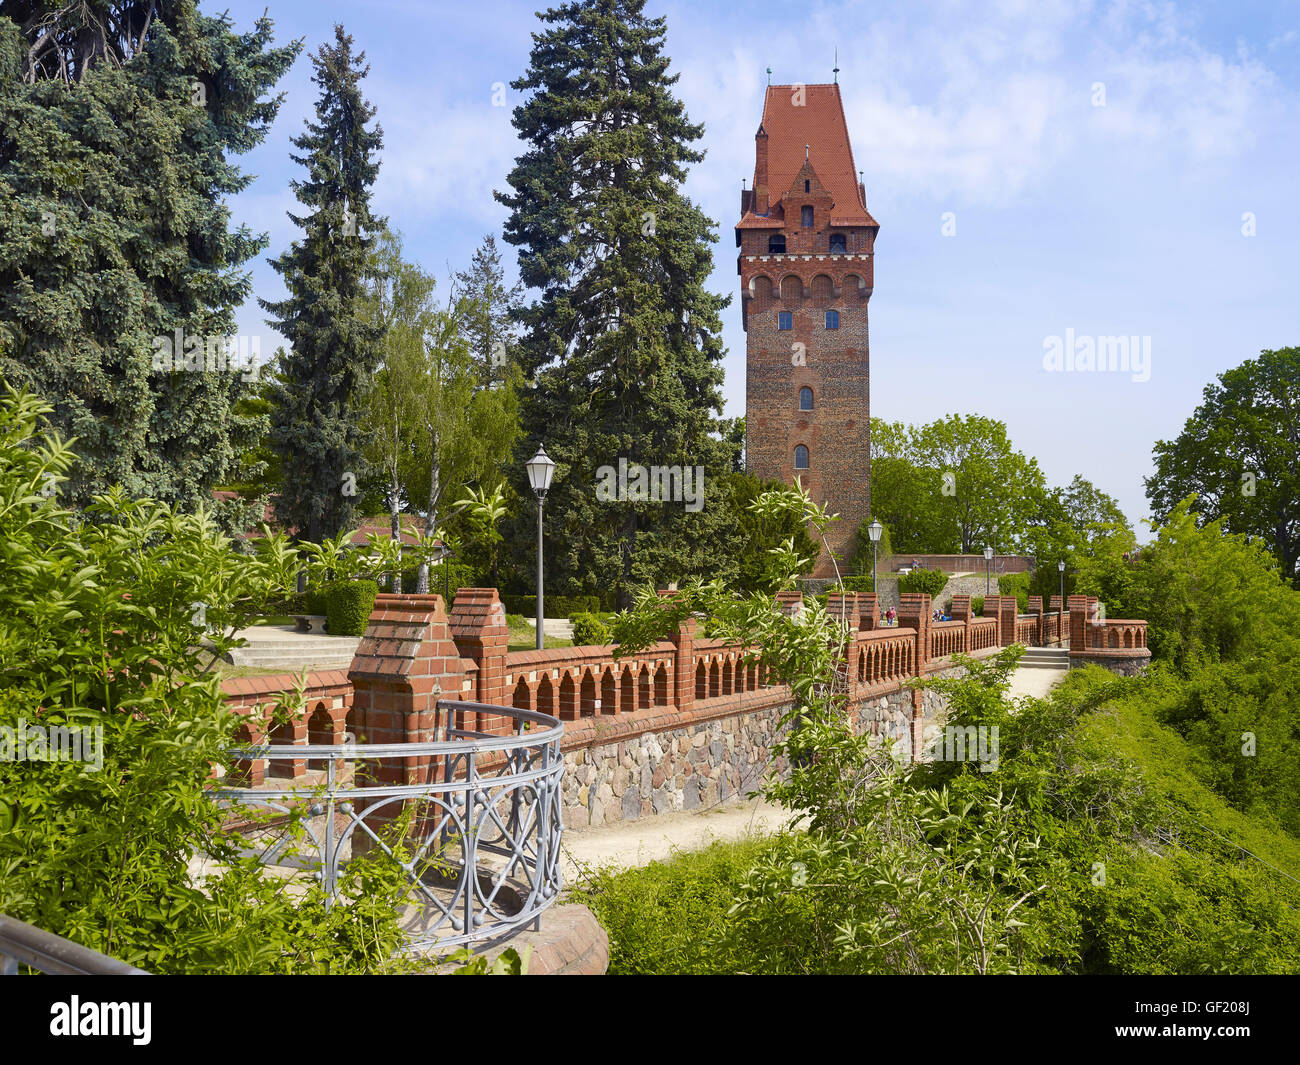 Tower at the castle, Tangermuende, Germany Stock Photo